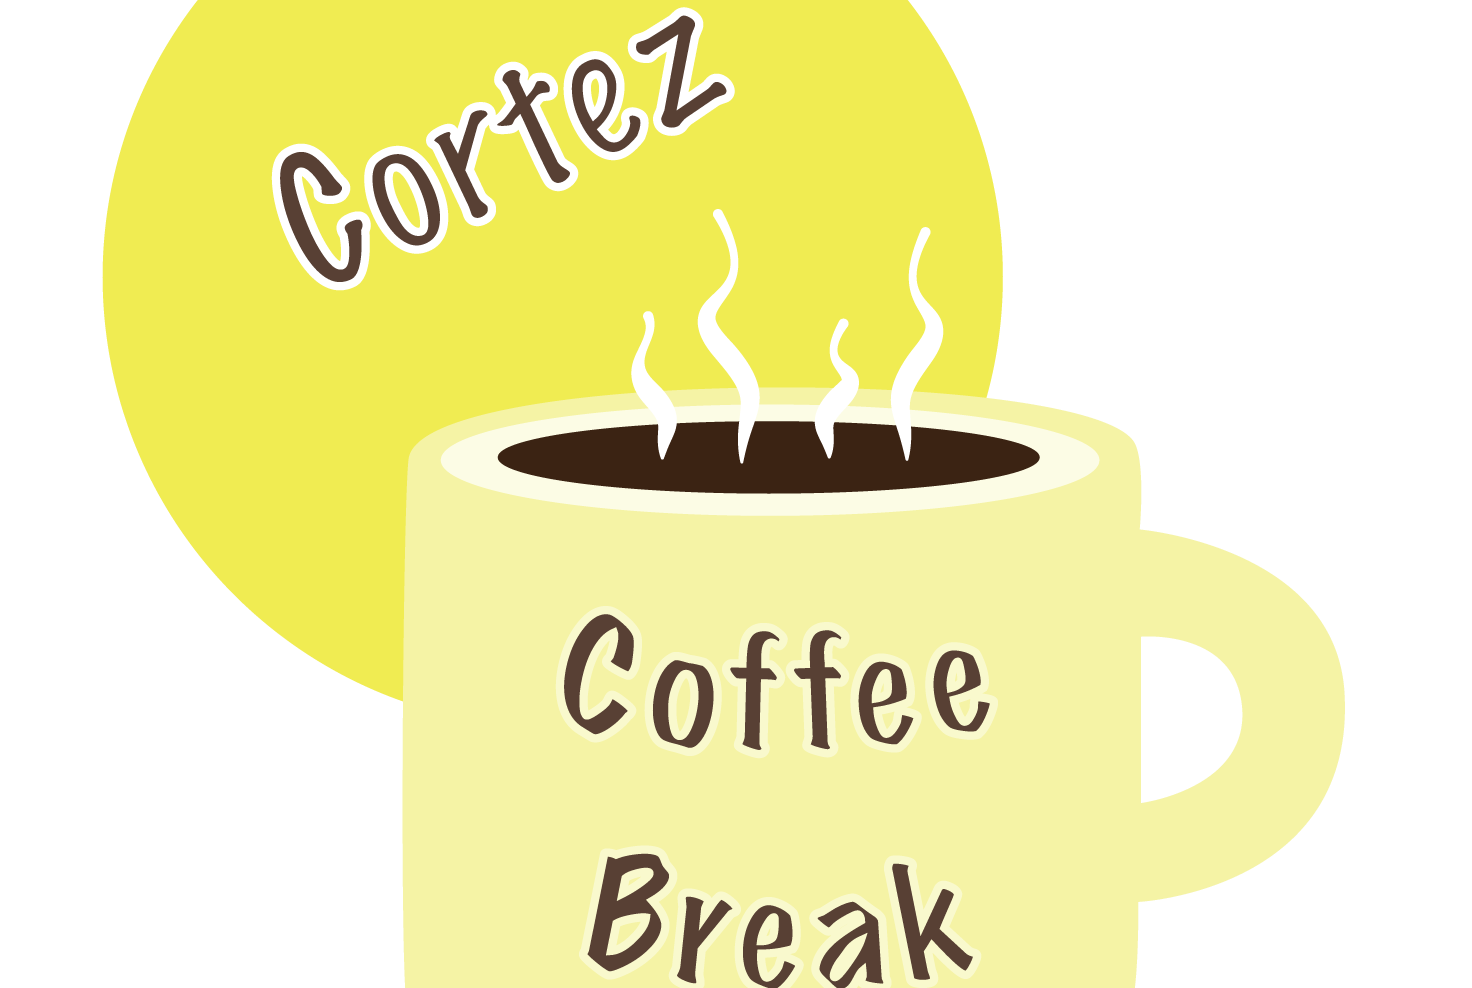 Cortez Coffee Break